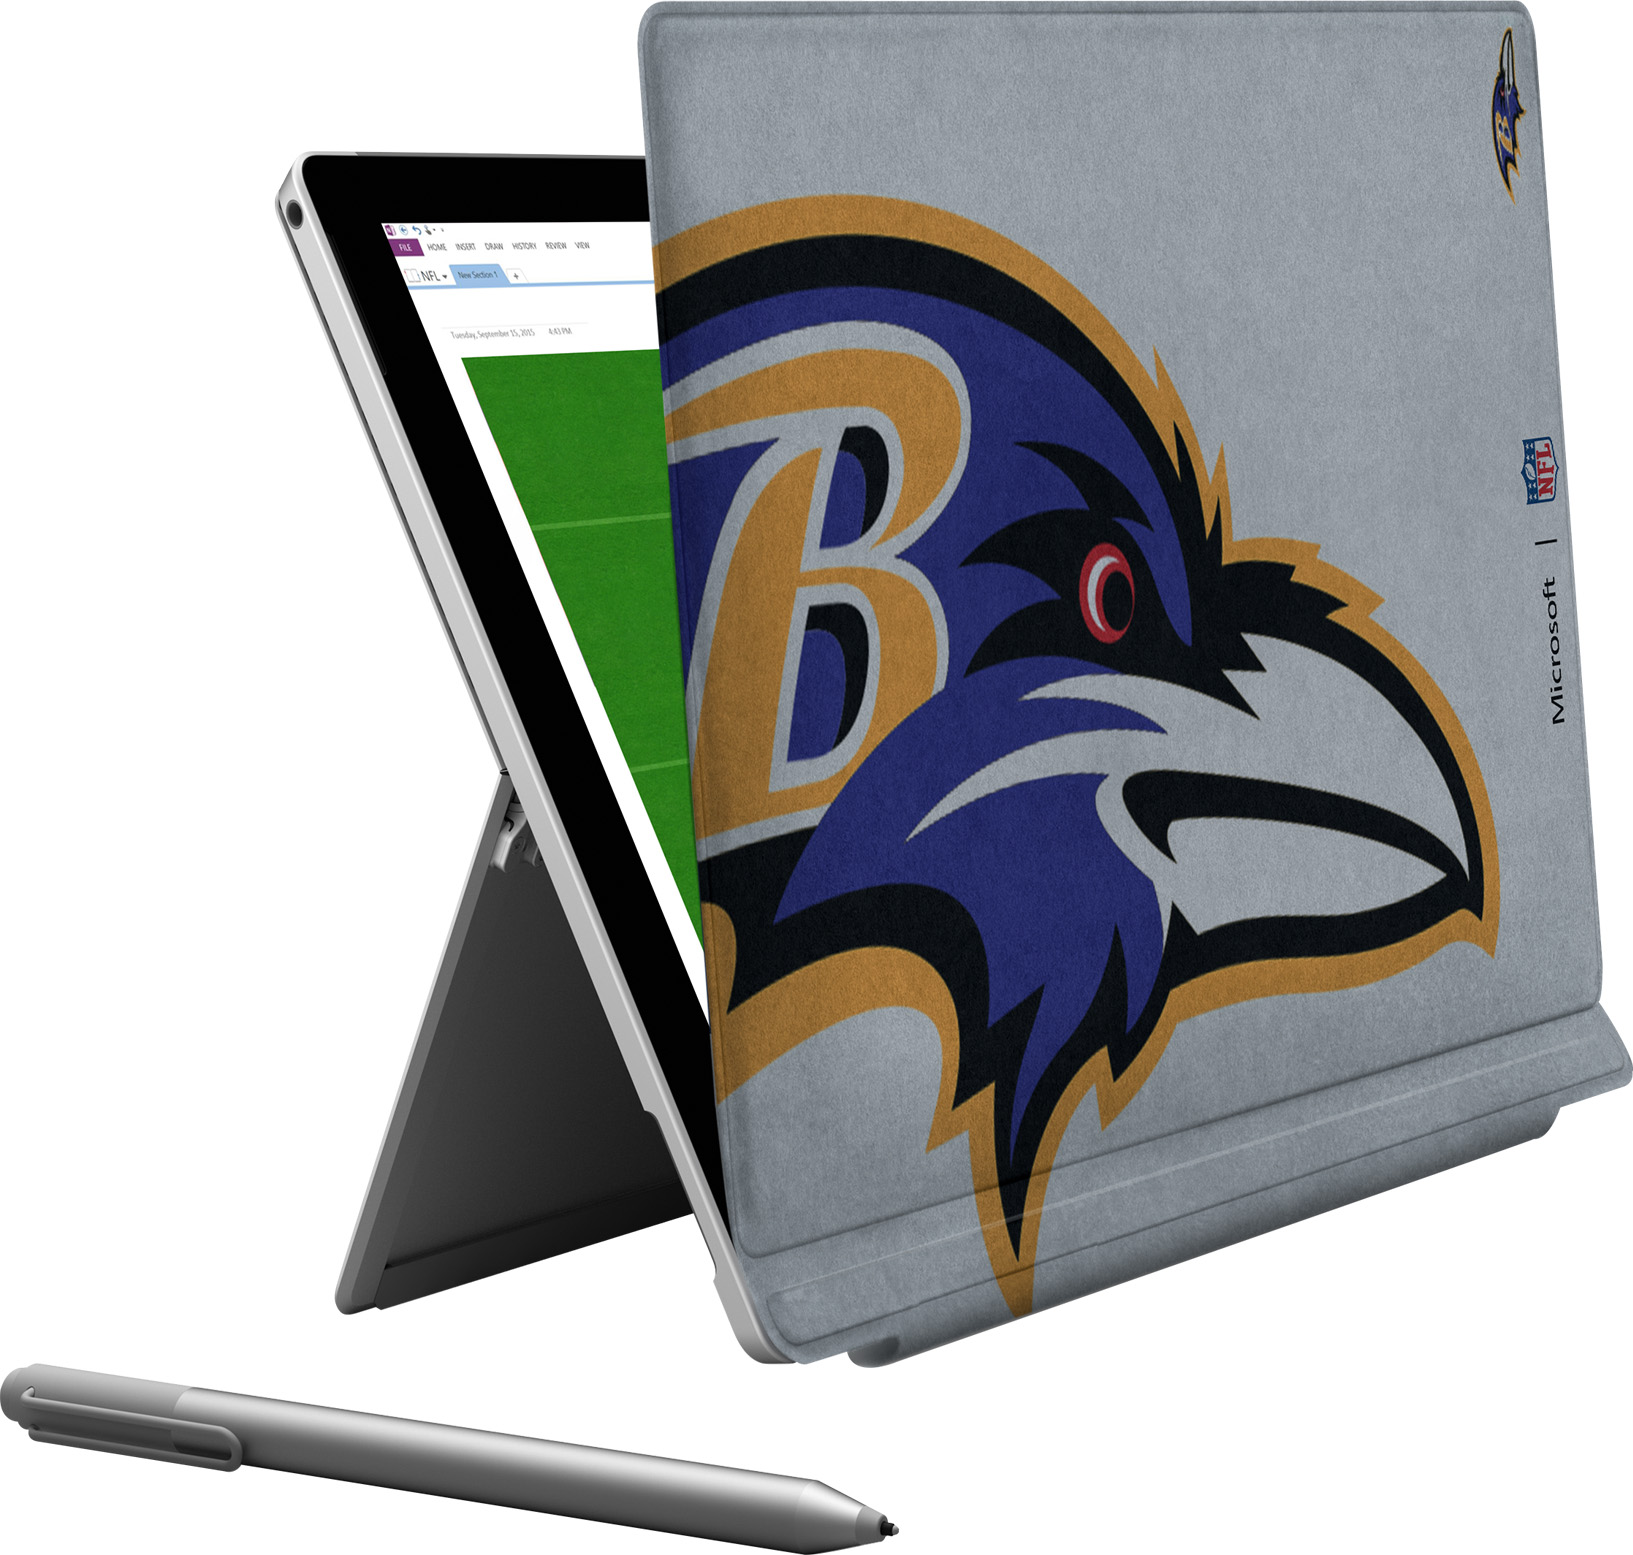 Microsoft Surface Pro 4 Baltimore Ravens Type Cover